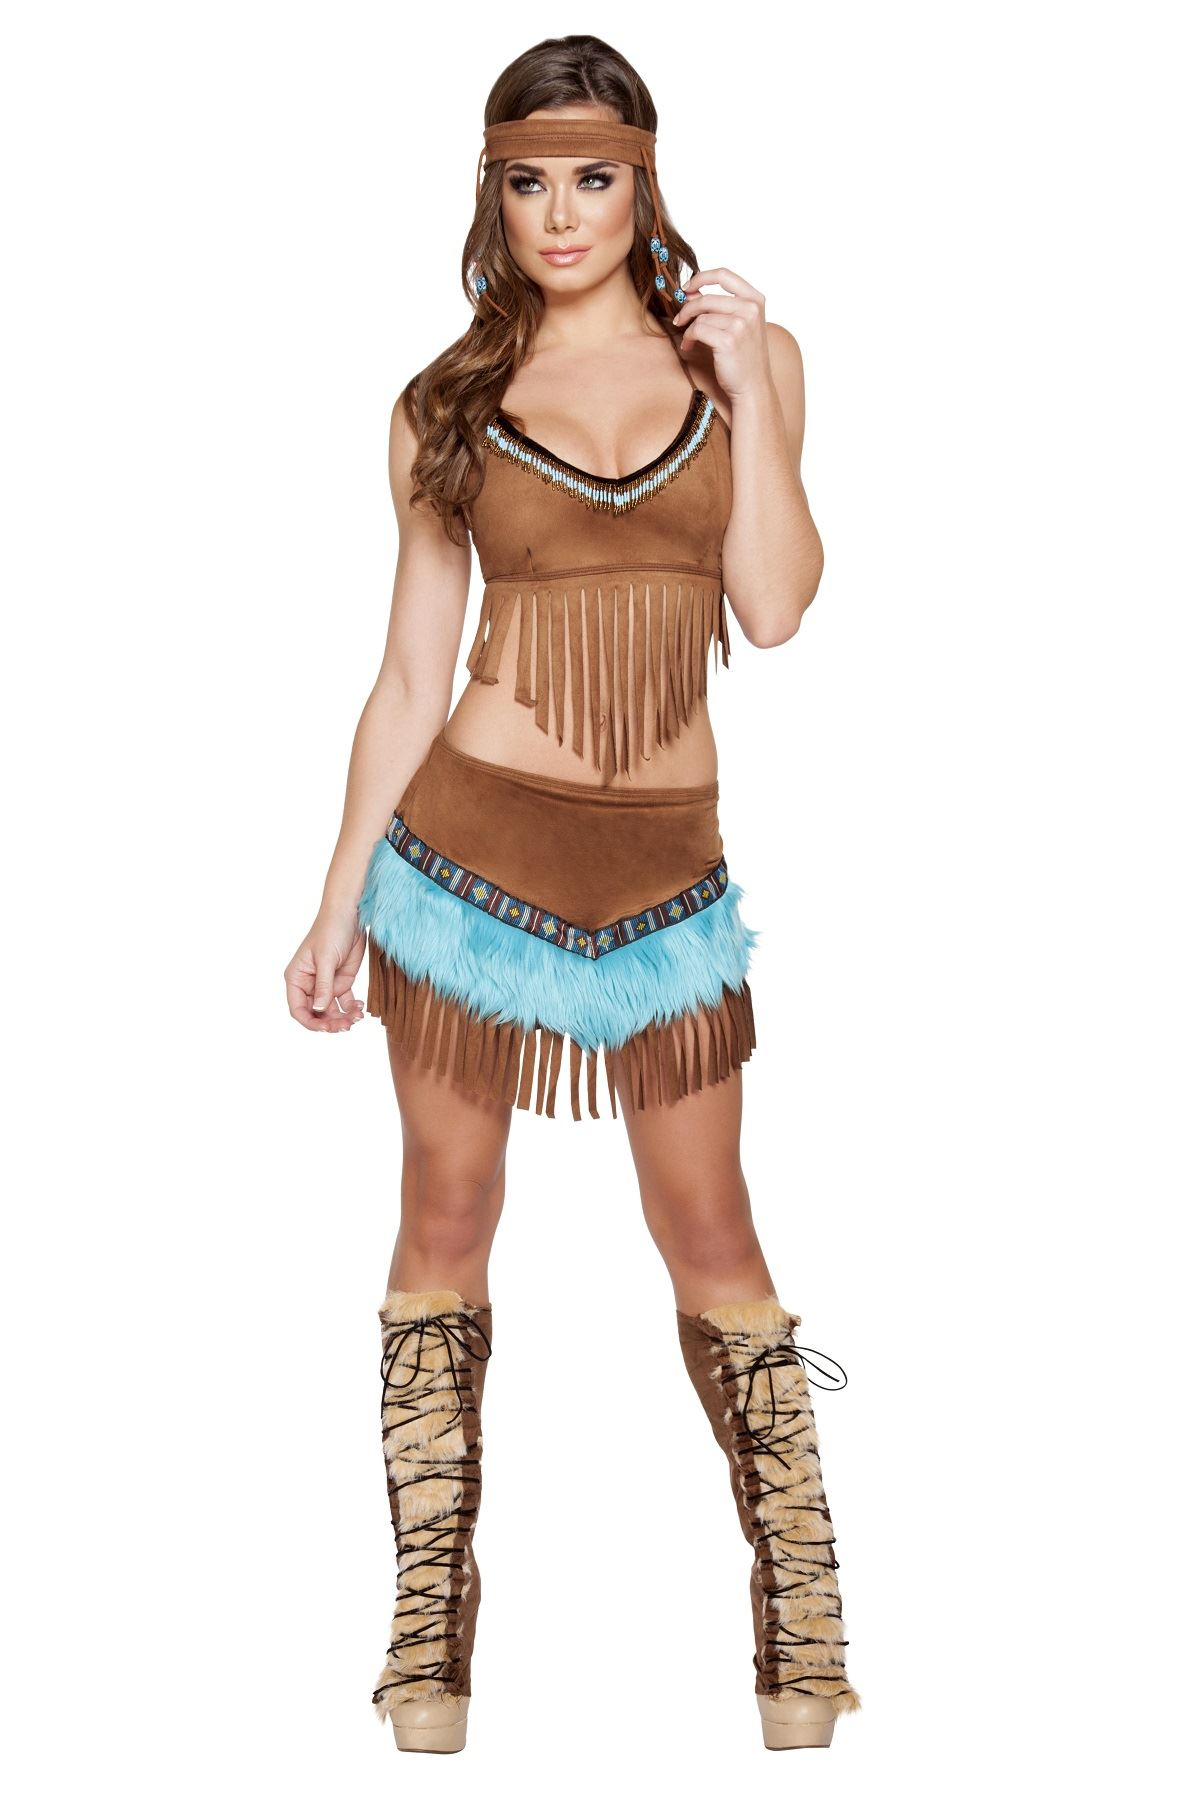 Adult Native American Beautiful Indian Babe Costume